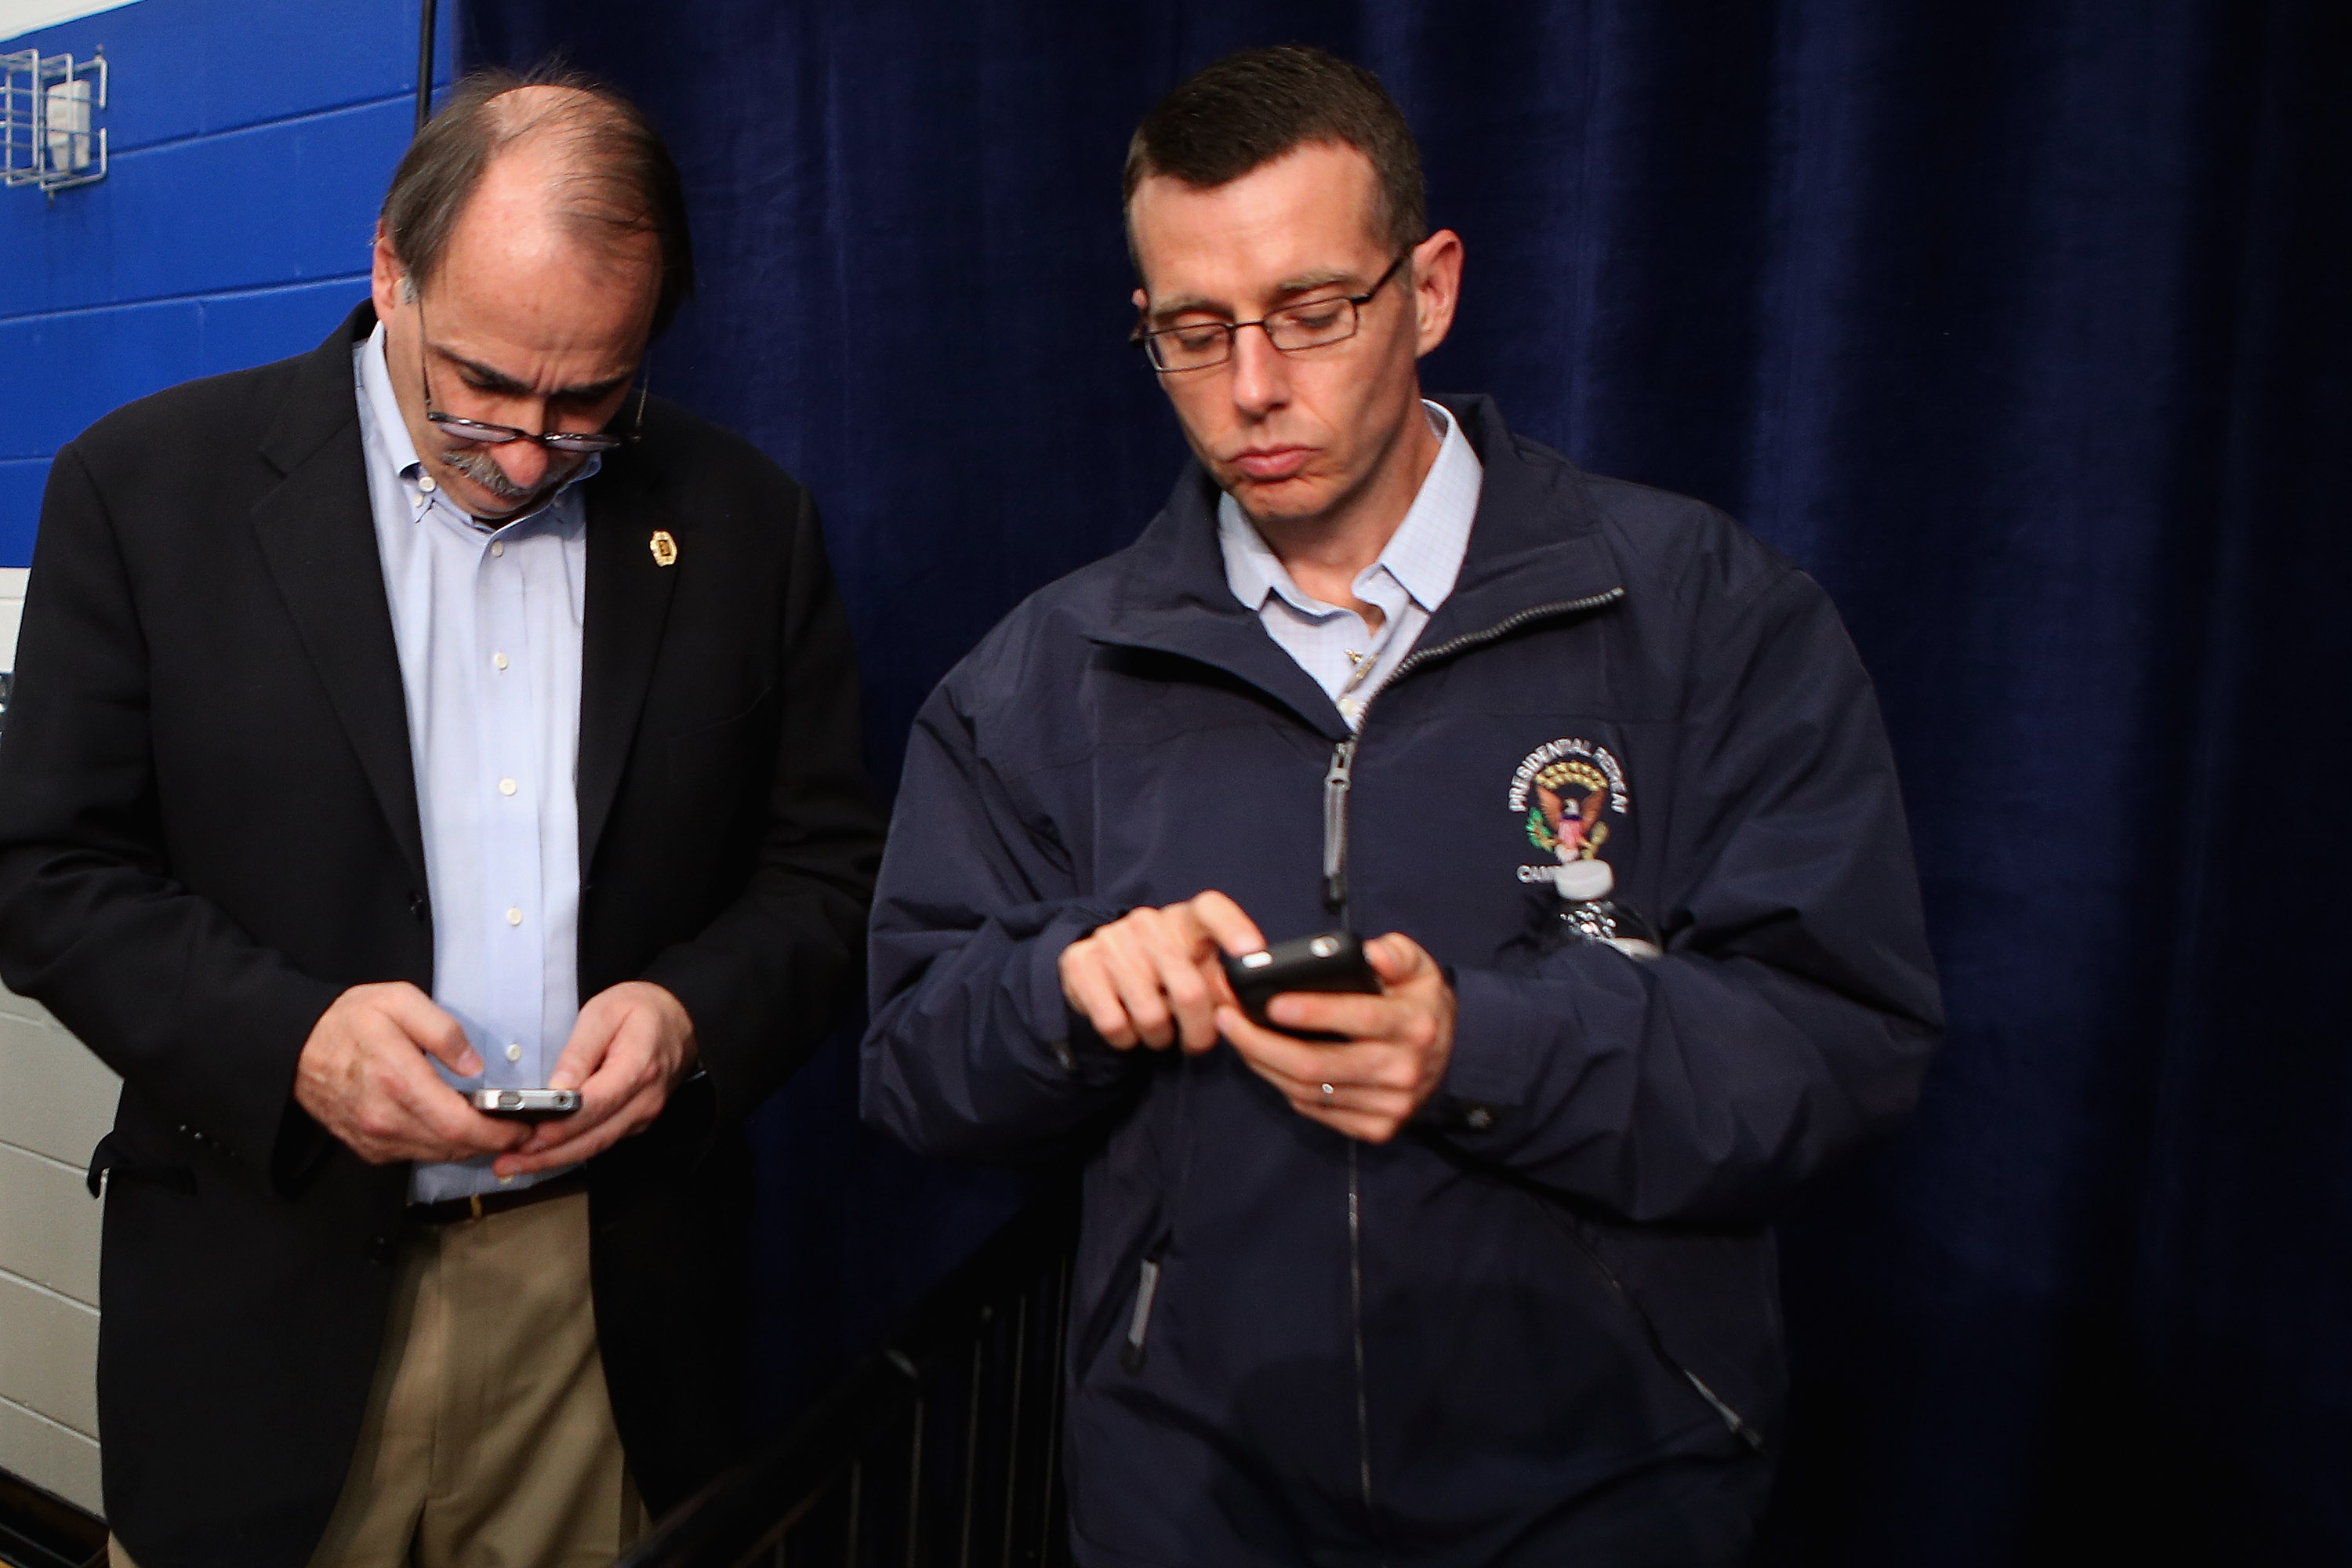 David Plouffe, right, during President Obama's 2012 campaign. (Chip Somodevilla/Getty Images)